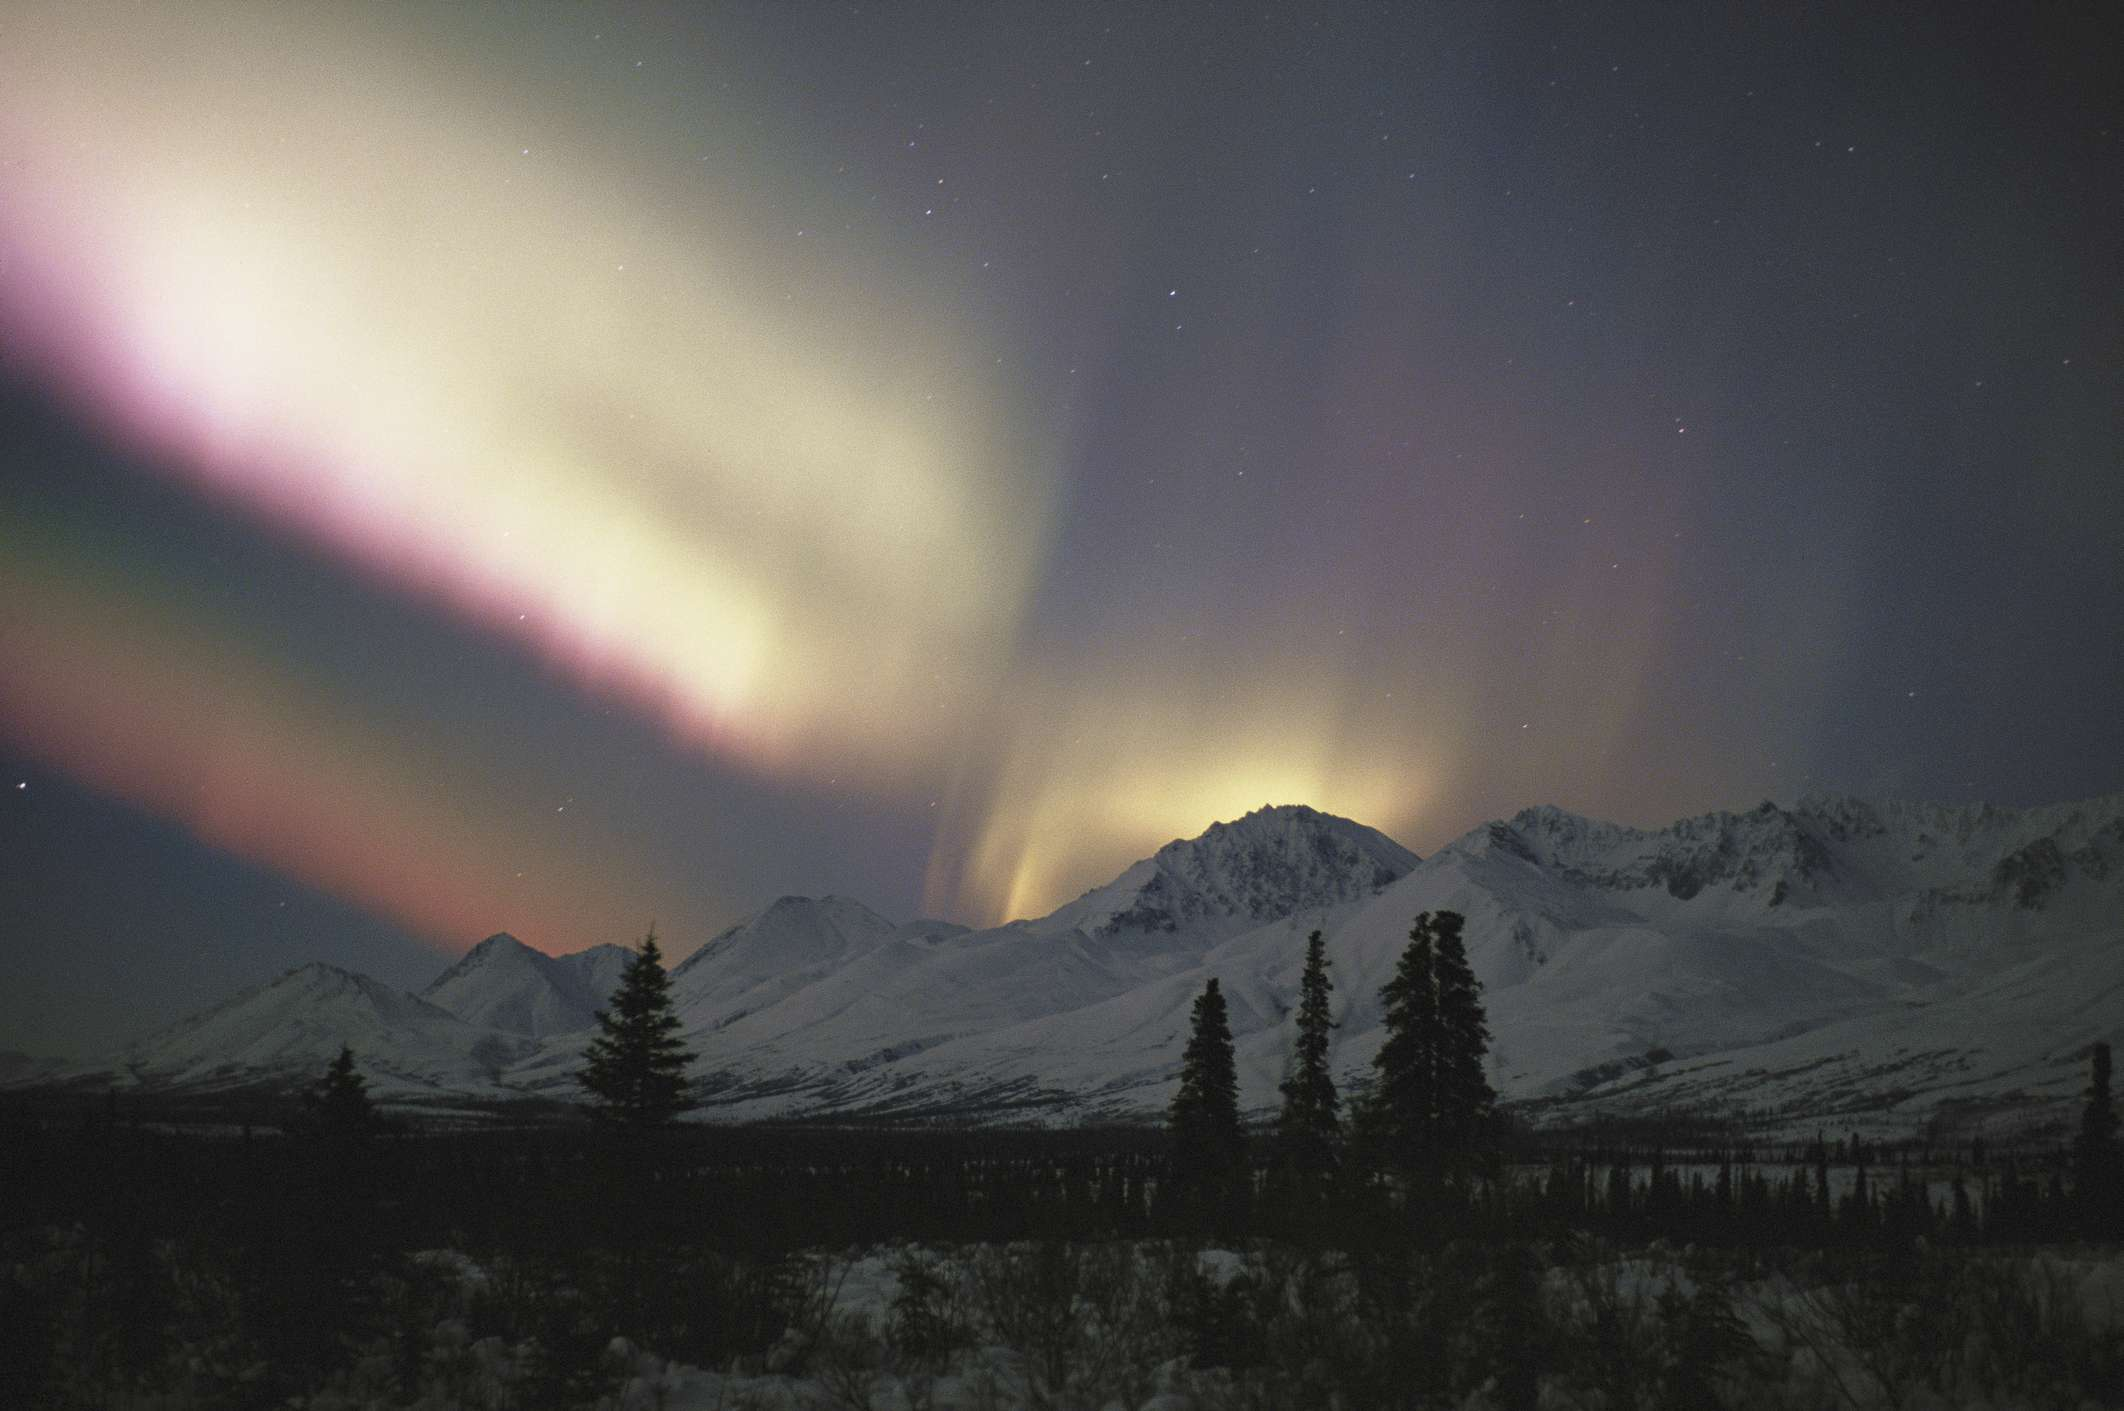 White and pink northern lights over snowy mountains